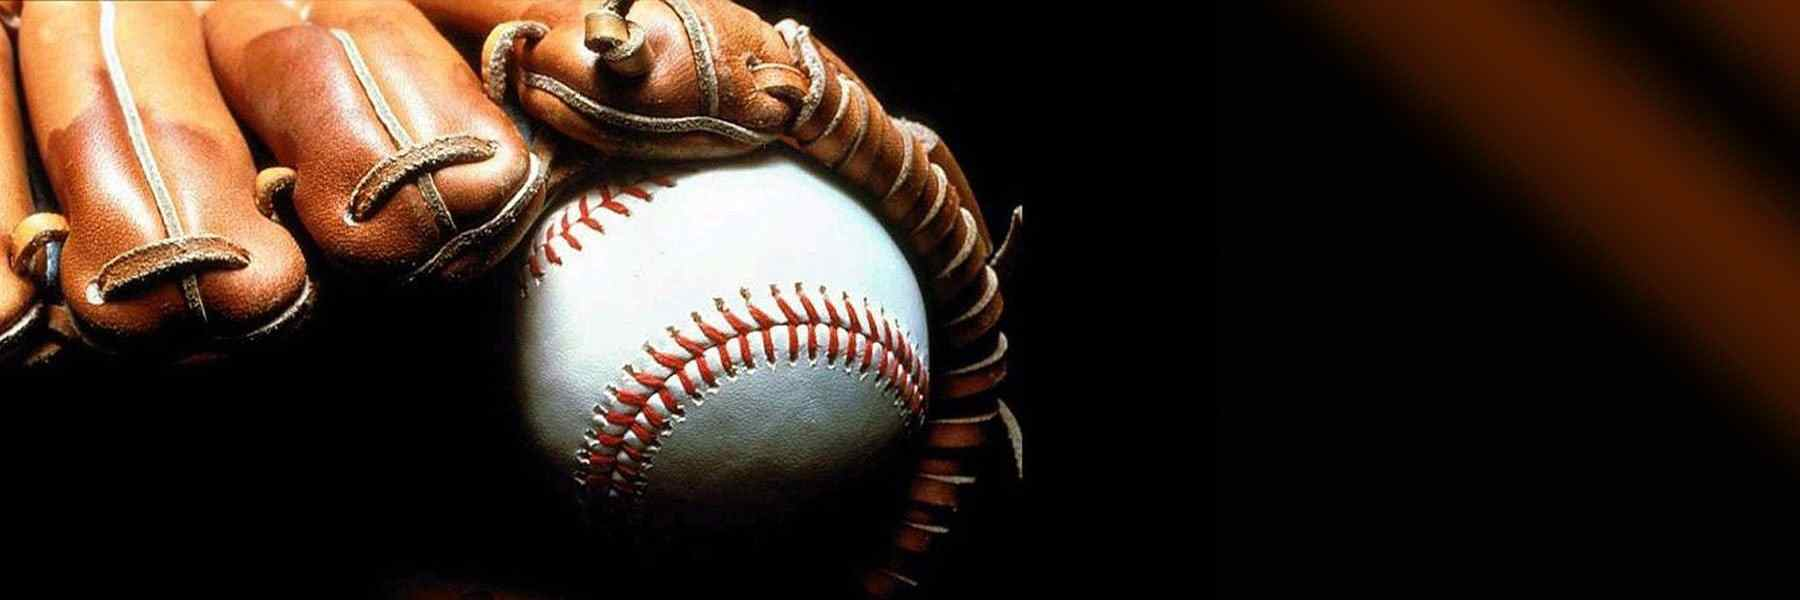 Baseball League Management Software